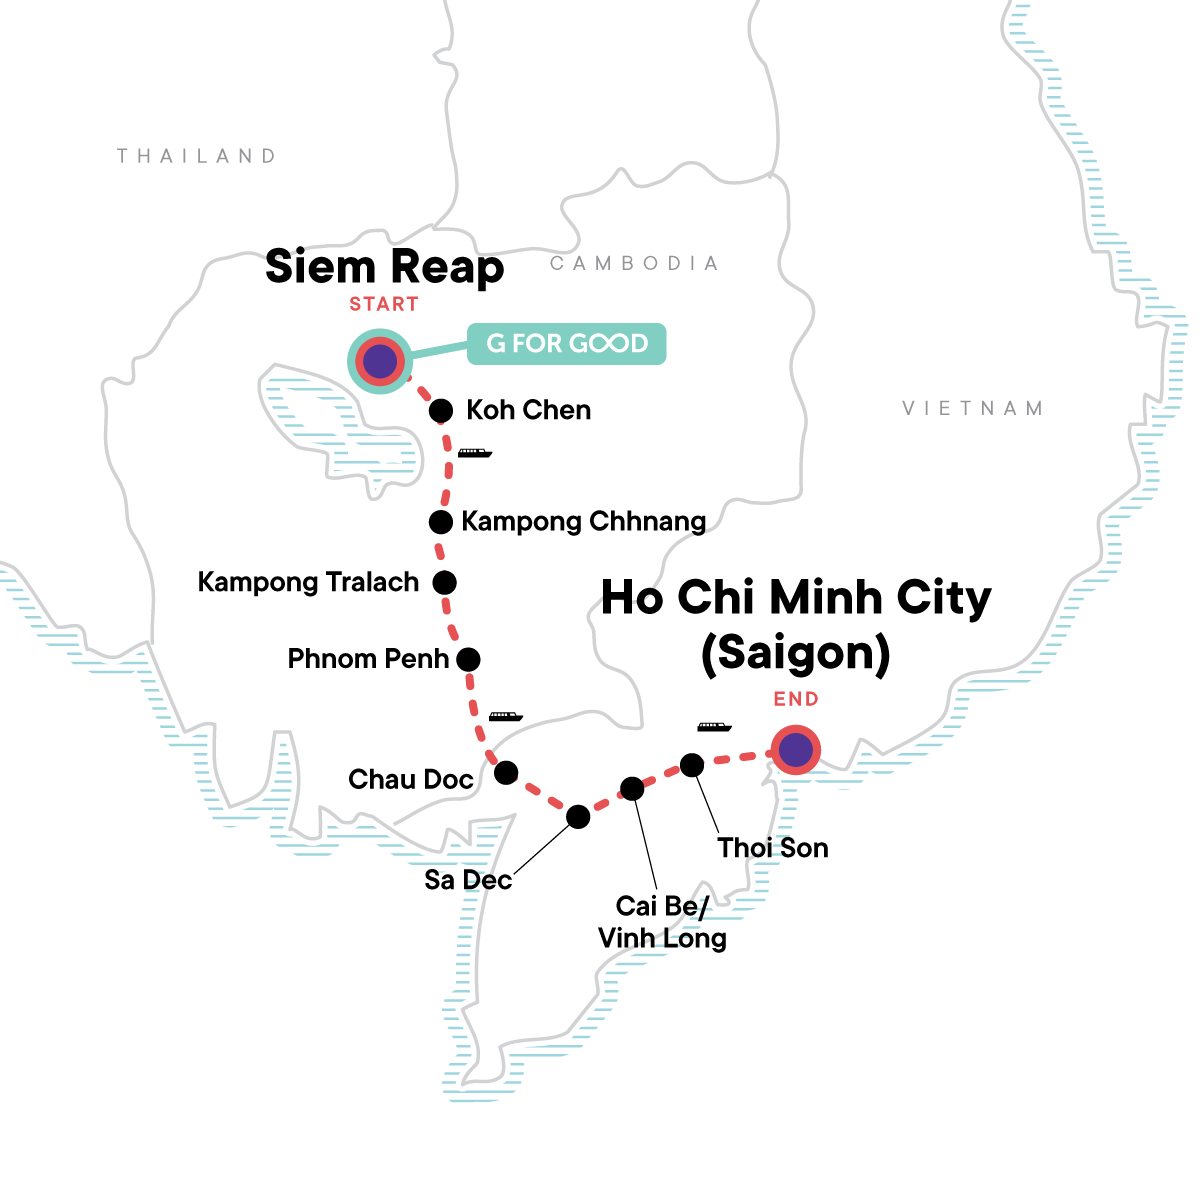 Mekong River Experience – Siem Reap to Ho Chi Minh City Map